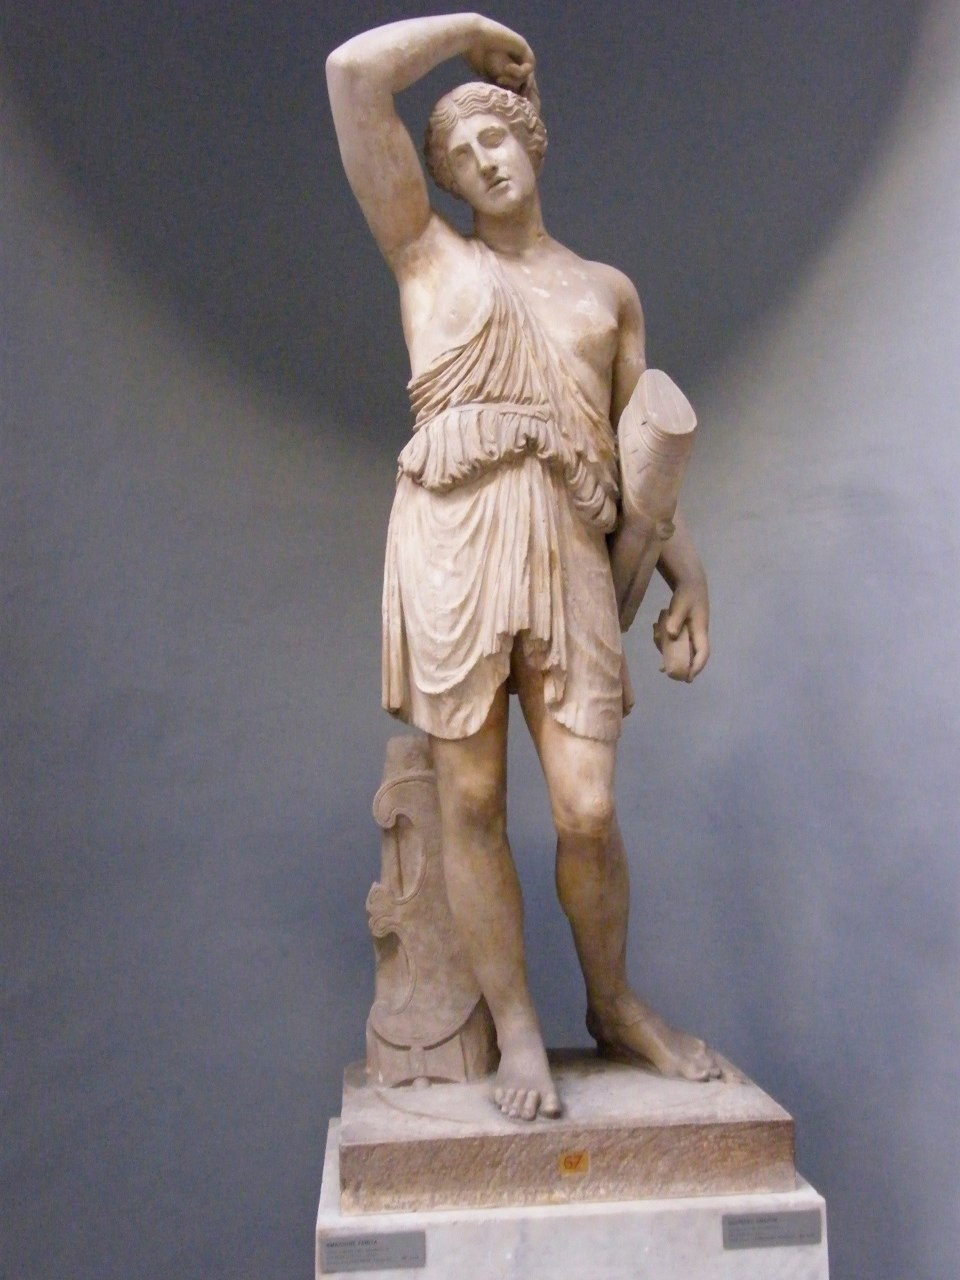 <p><i>The Amazon</i> of the Mattei type.</p><p>Roman copy after original bronze</p><p>c. 430 BCE attributed to Phidias. Marble.</p><p>Museo Pio-Clementino, Vatican City.</p>